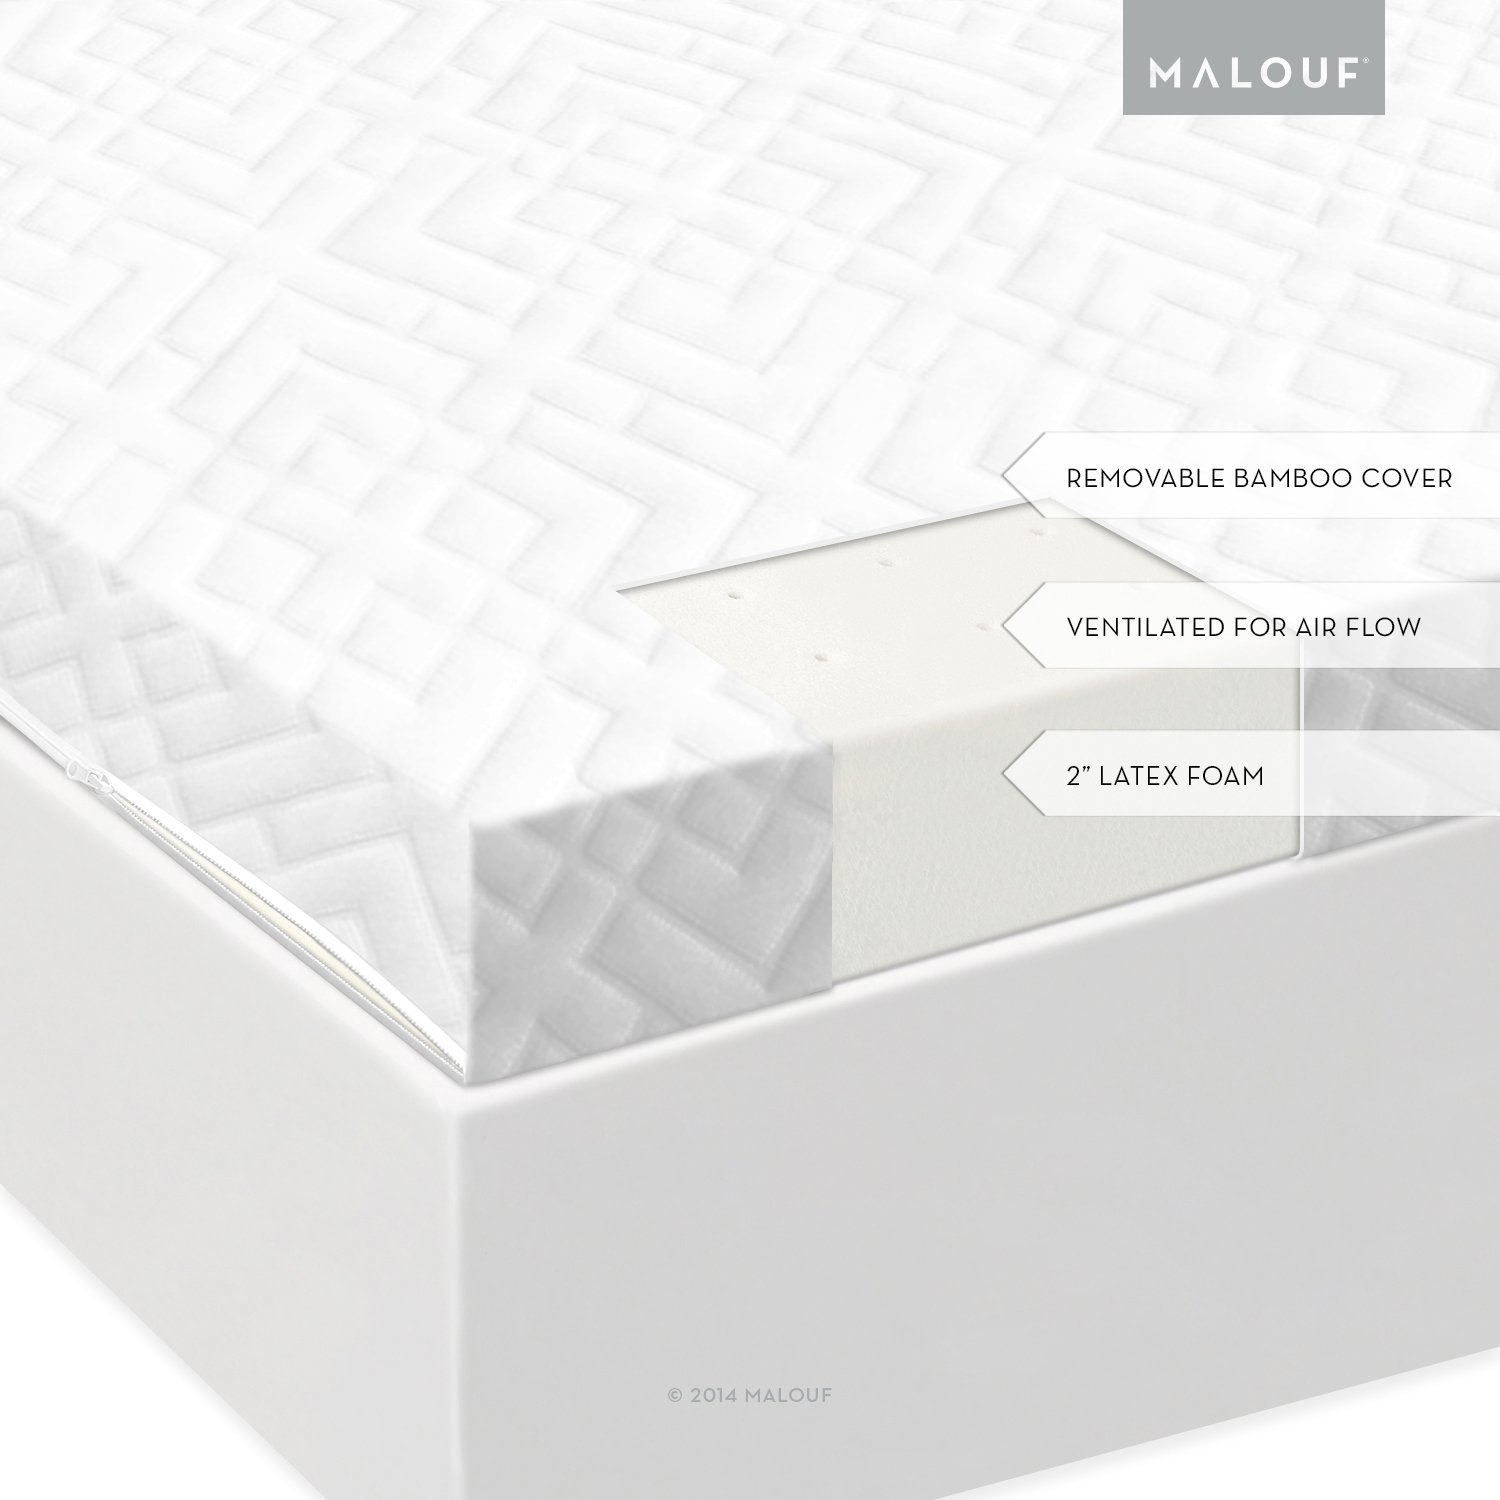 Amazon.com: ISOLUS 2 Inch Ventilated Latex Mattress Topper - Latex Core Made In USA - Queen Size: Home & Kitchen